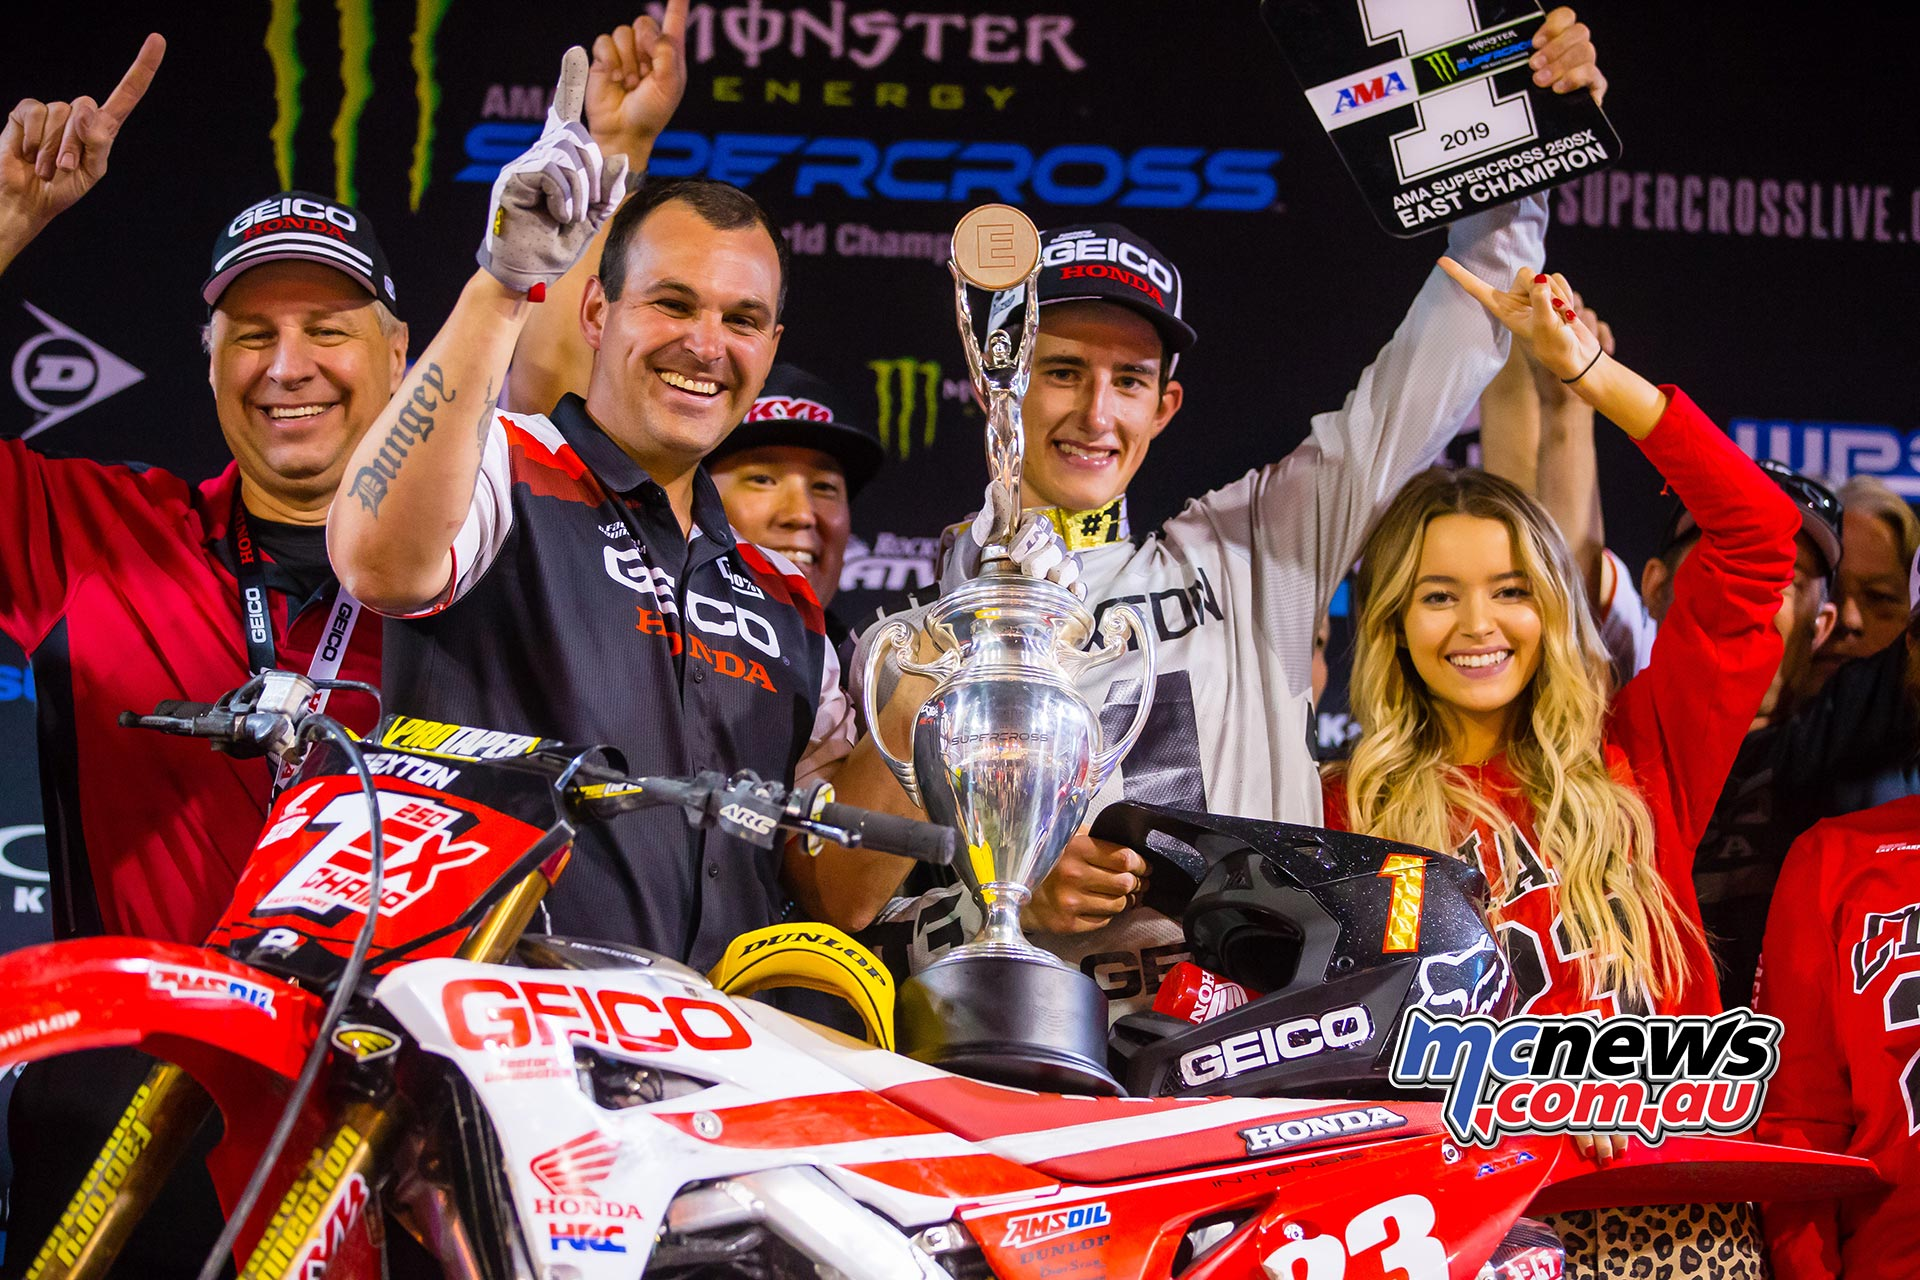 AMA Supercross FInal Sexton Podium JK SX Vegas